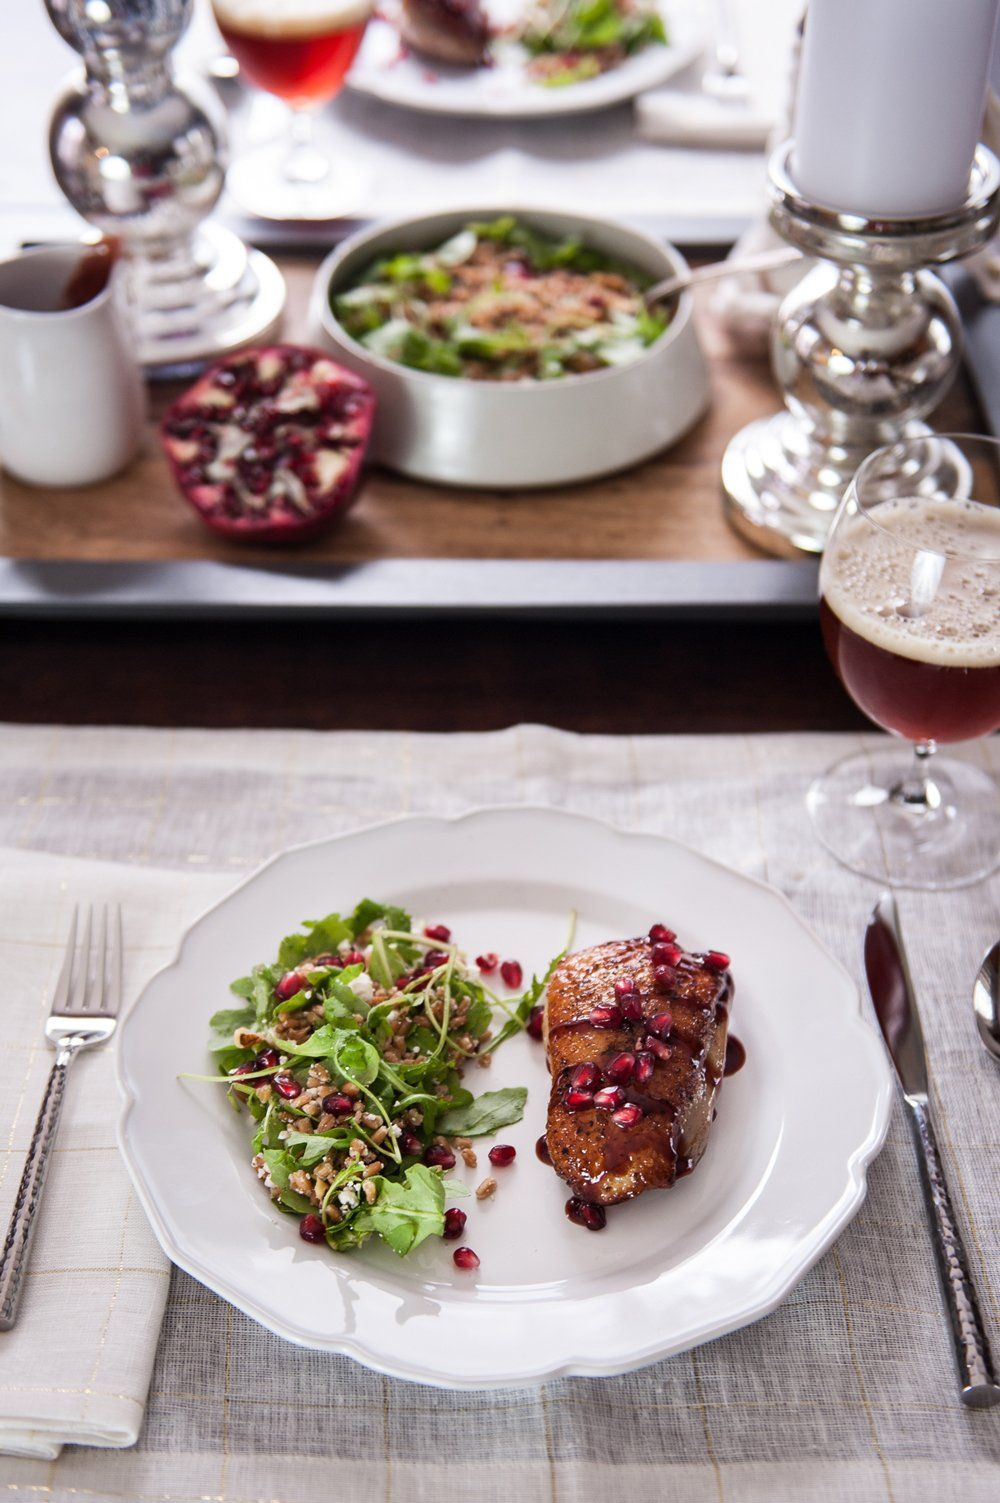 New Year's Eve Dinner Ideas for Two Cooking with beer